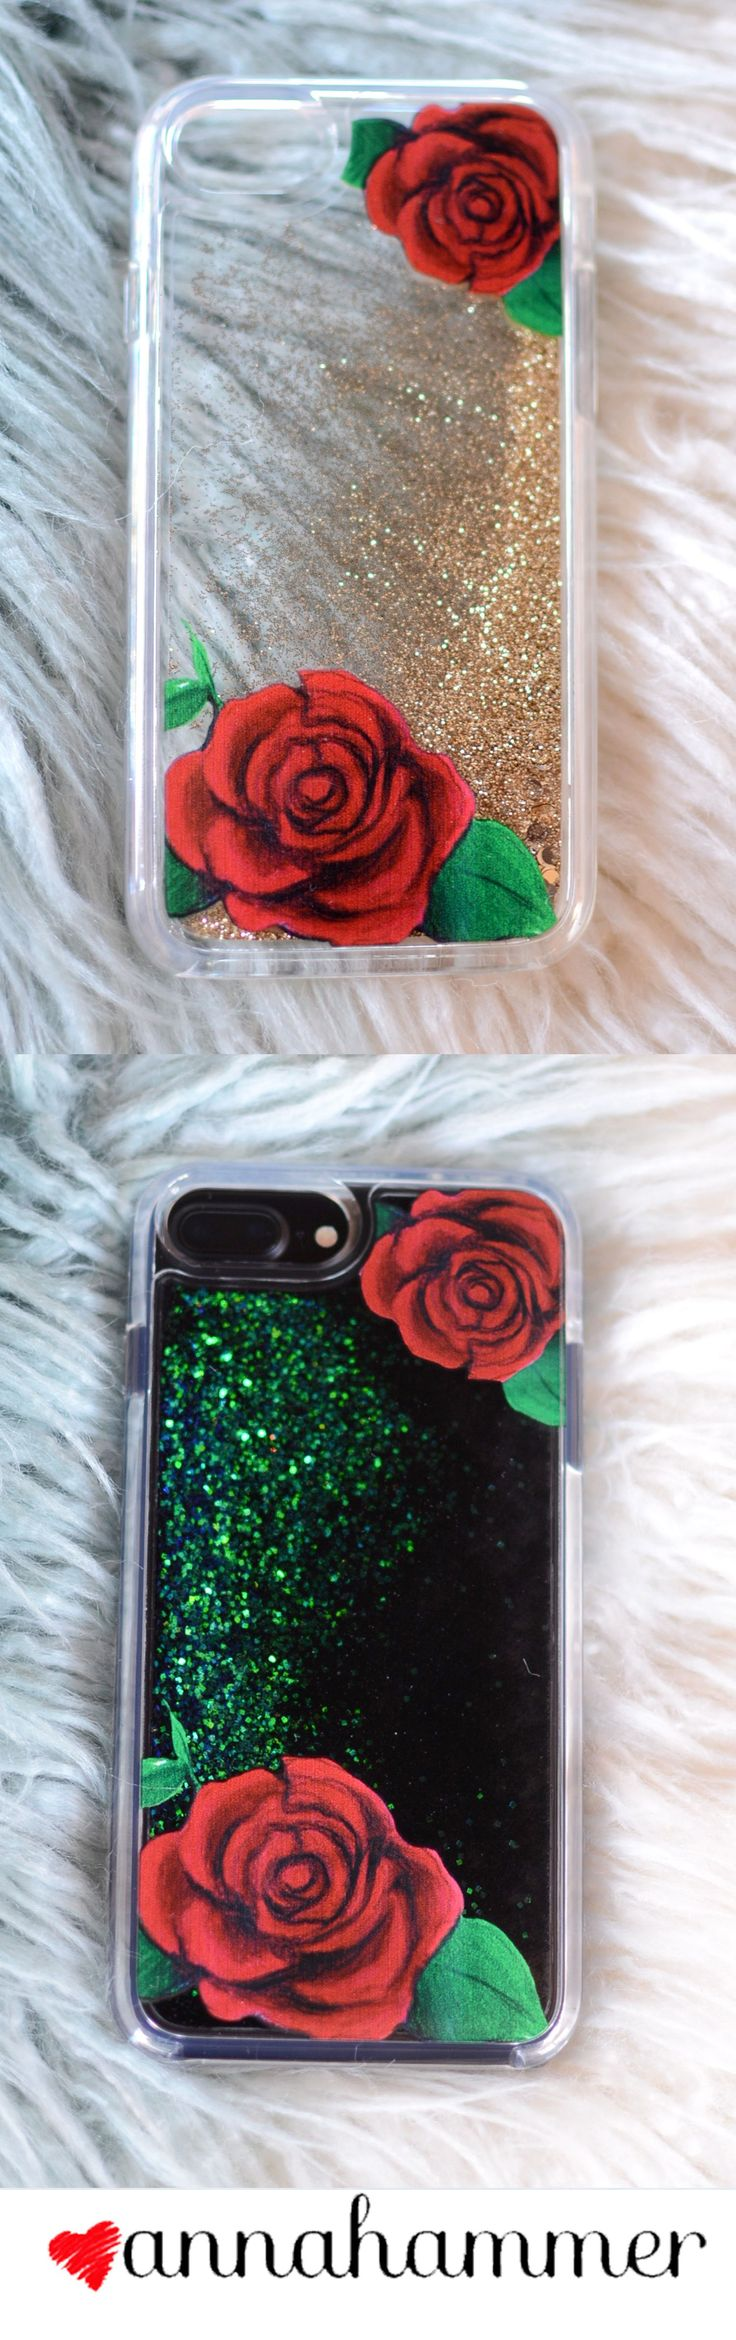 Roses And Glitter. Rich Gold or Emerald Green. Design by anna hammer #iphone,